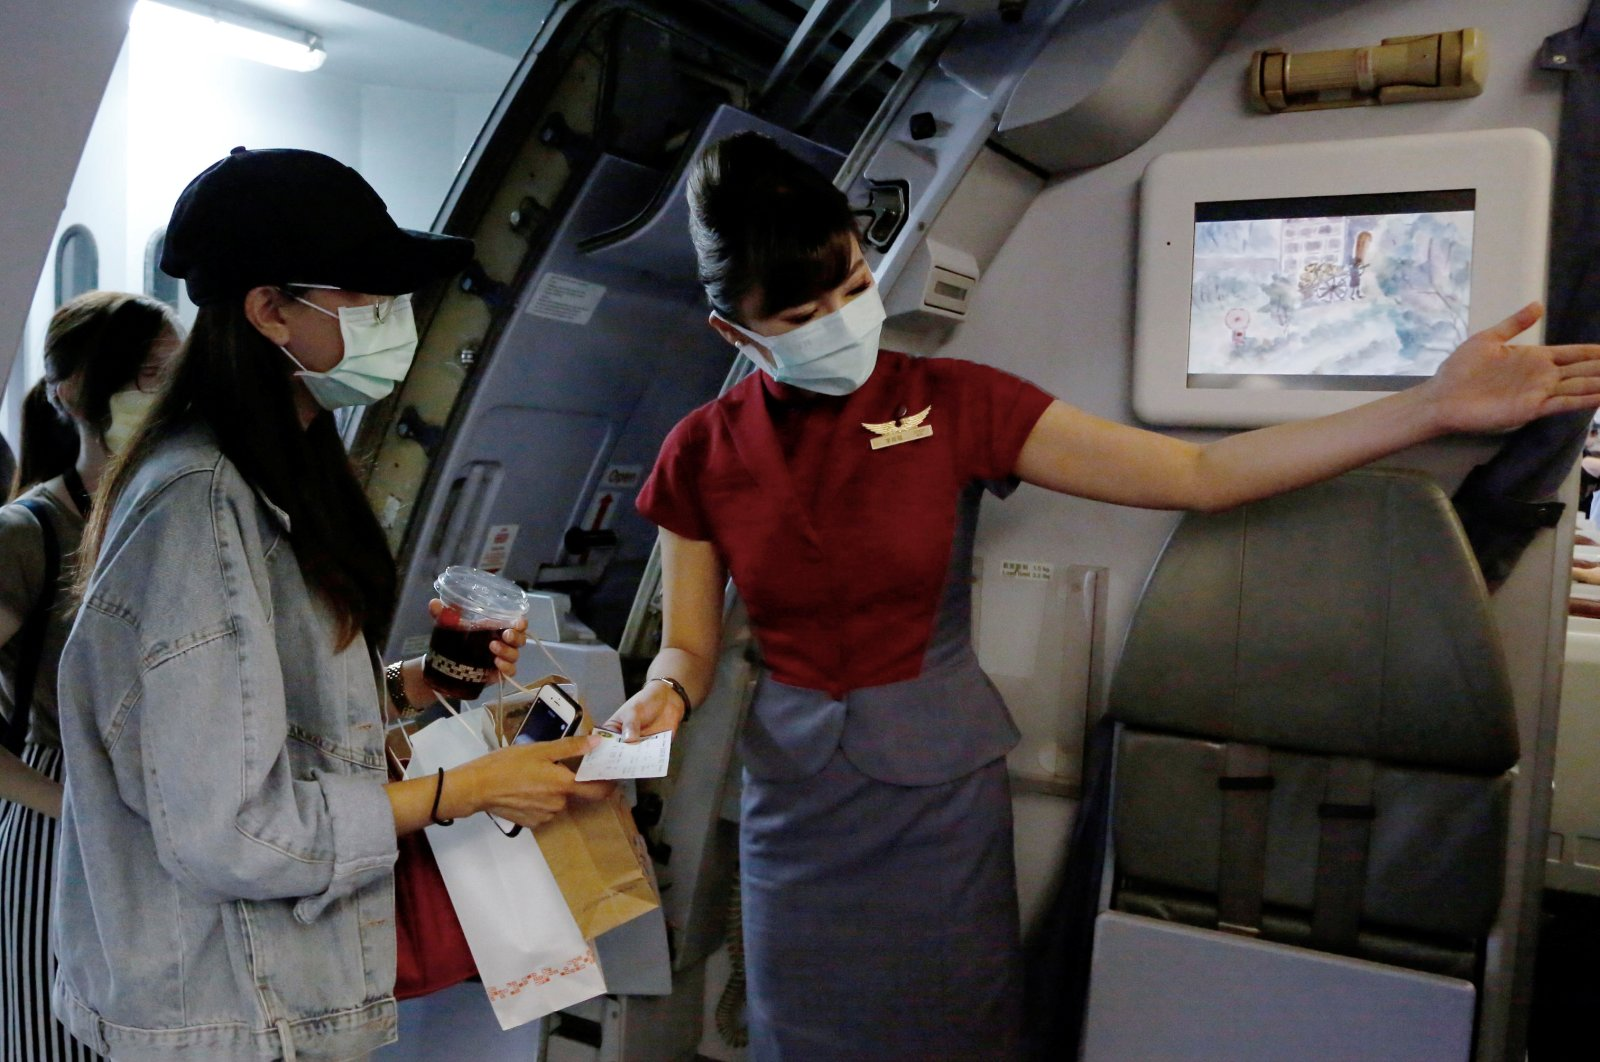 """People board a plane as they take part in a """"fake"""" travel experience at Songshan airport in Taipei, Taiwan, July 2, 2020. (Reuters Photo)"""